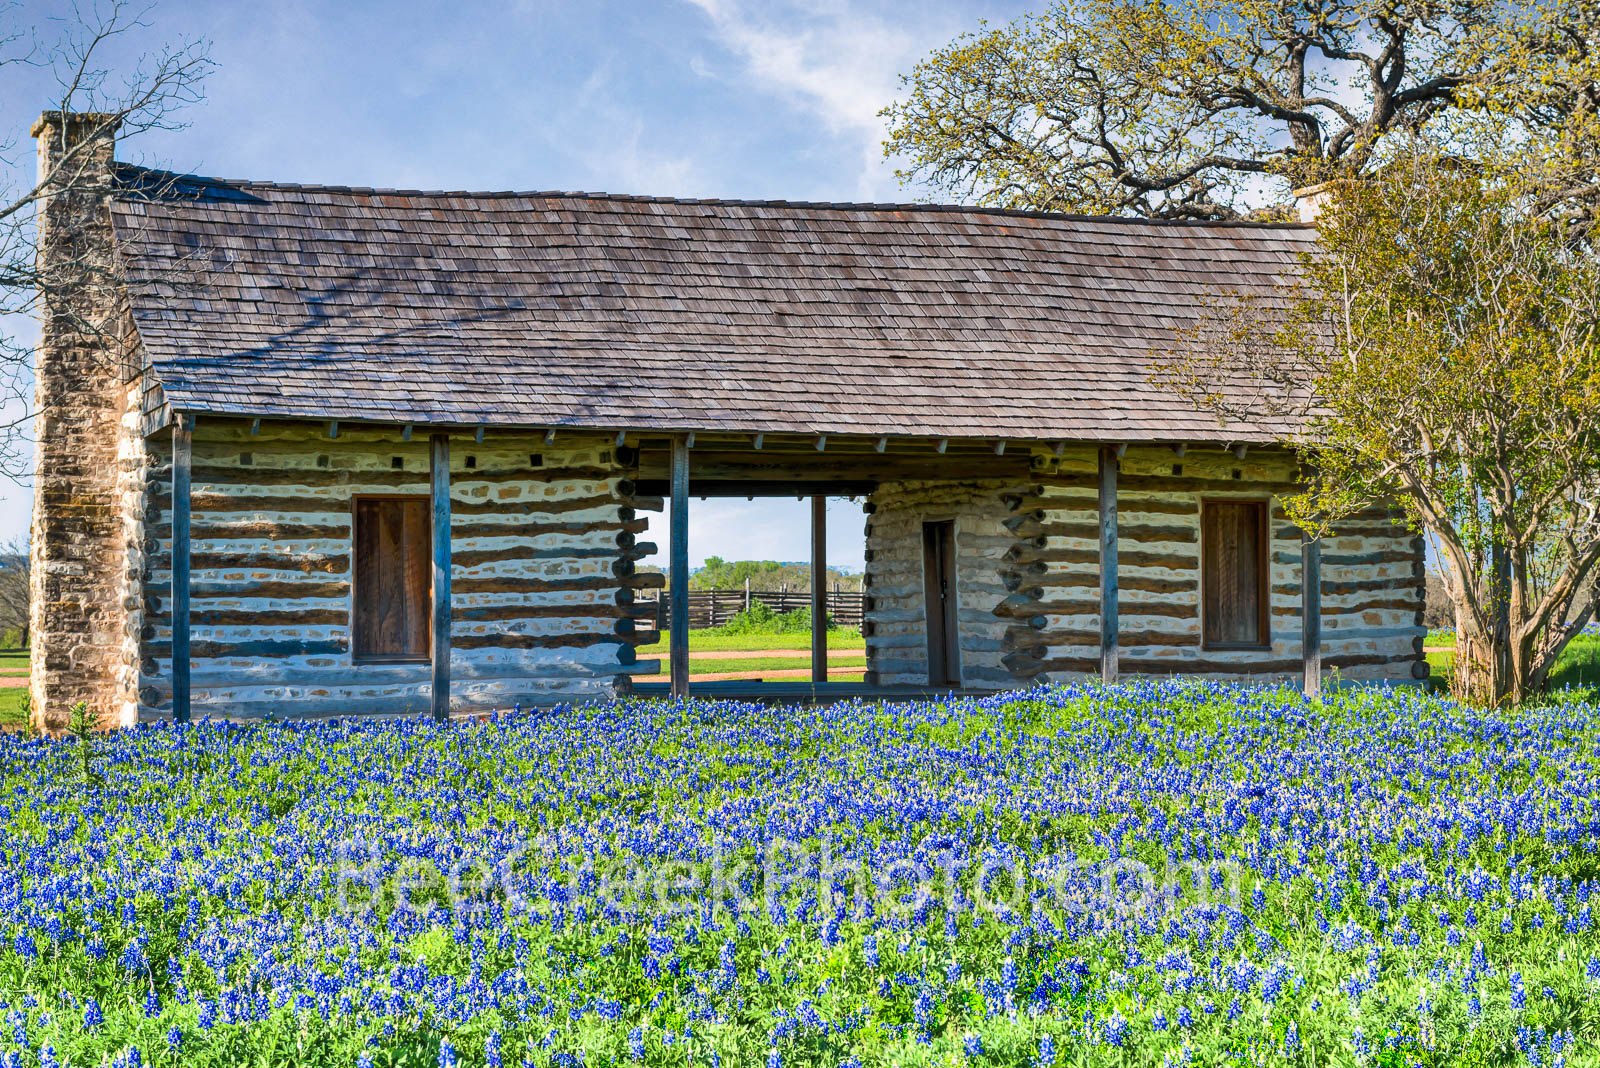 bluebonnets, blue bonnets, log cabin, historic, field, landscapes, wildflowers, images of texas, spring flowers, texas wildflowers,, photo